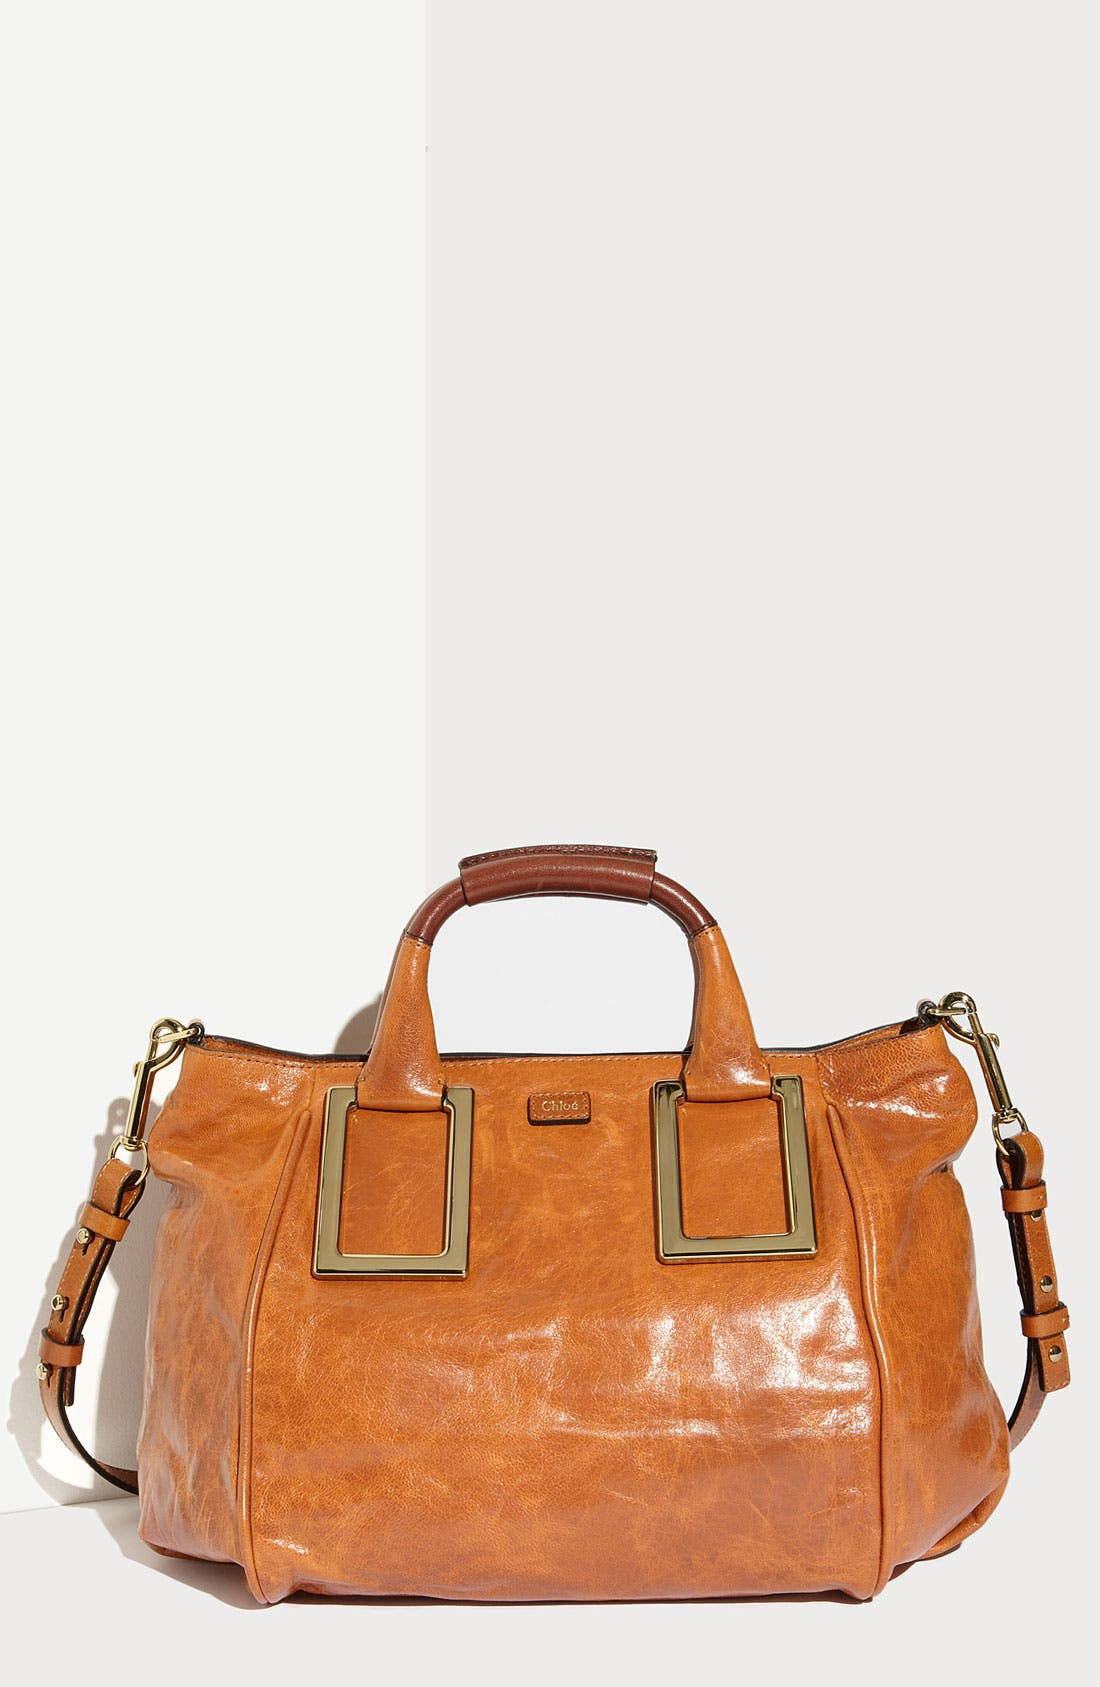 Main Image - Chloé 'Ethel - Medium' Leather Satchel